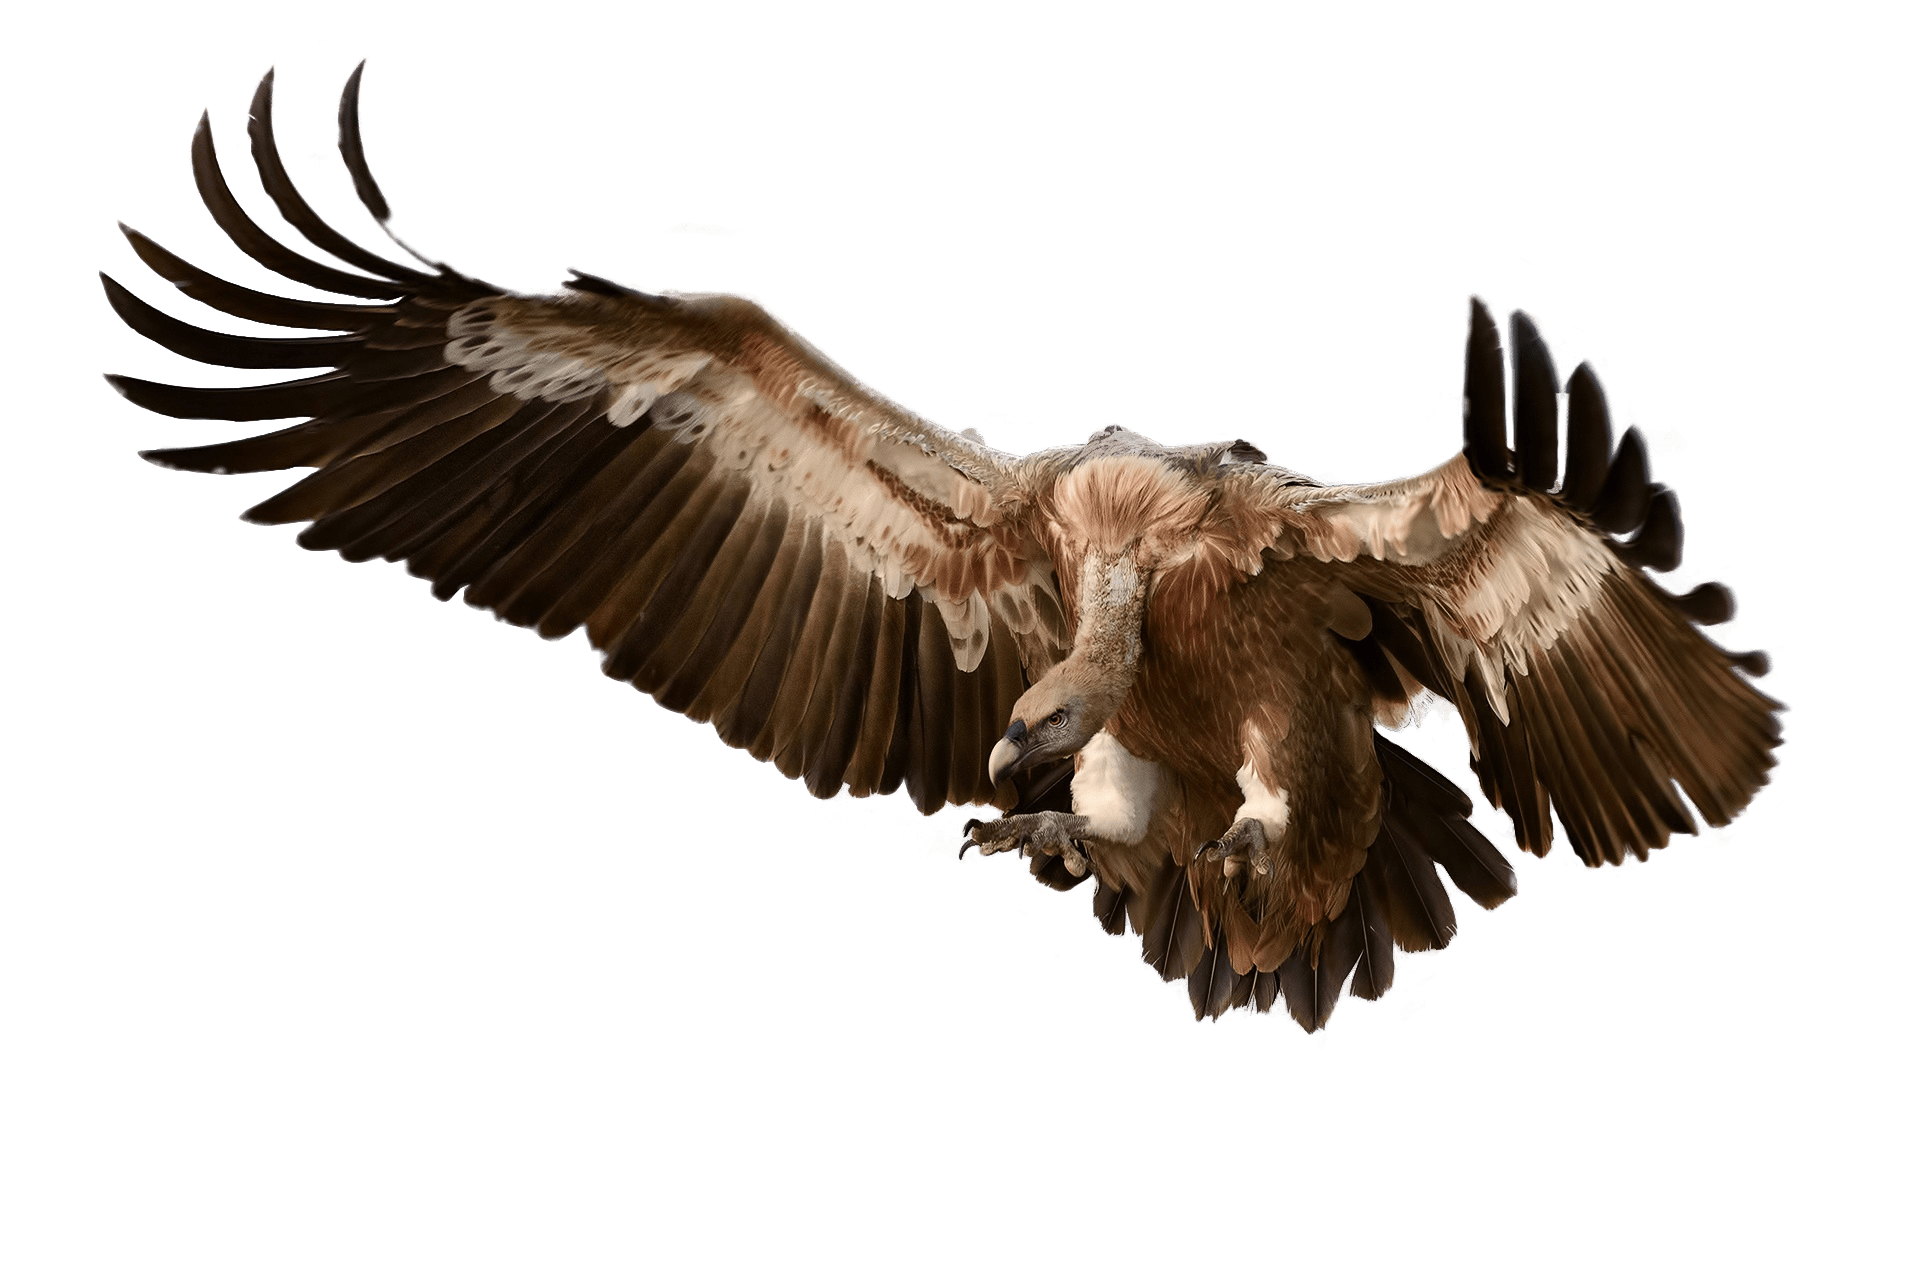 Turkey vulture clipart picture royalty free download Vulture Attacking Its Prey transparent PNG - StickPNG picture royalty free download